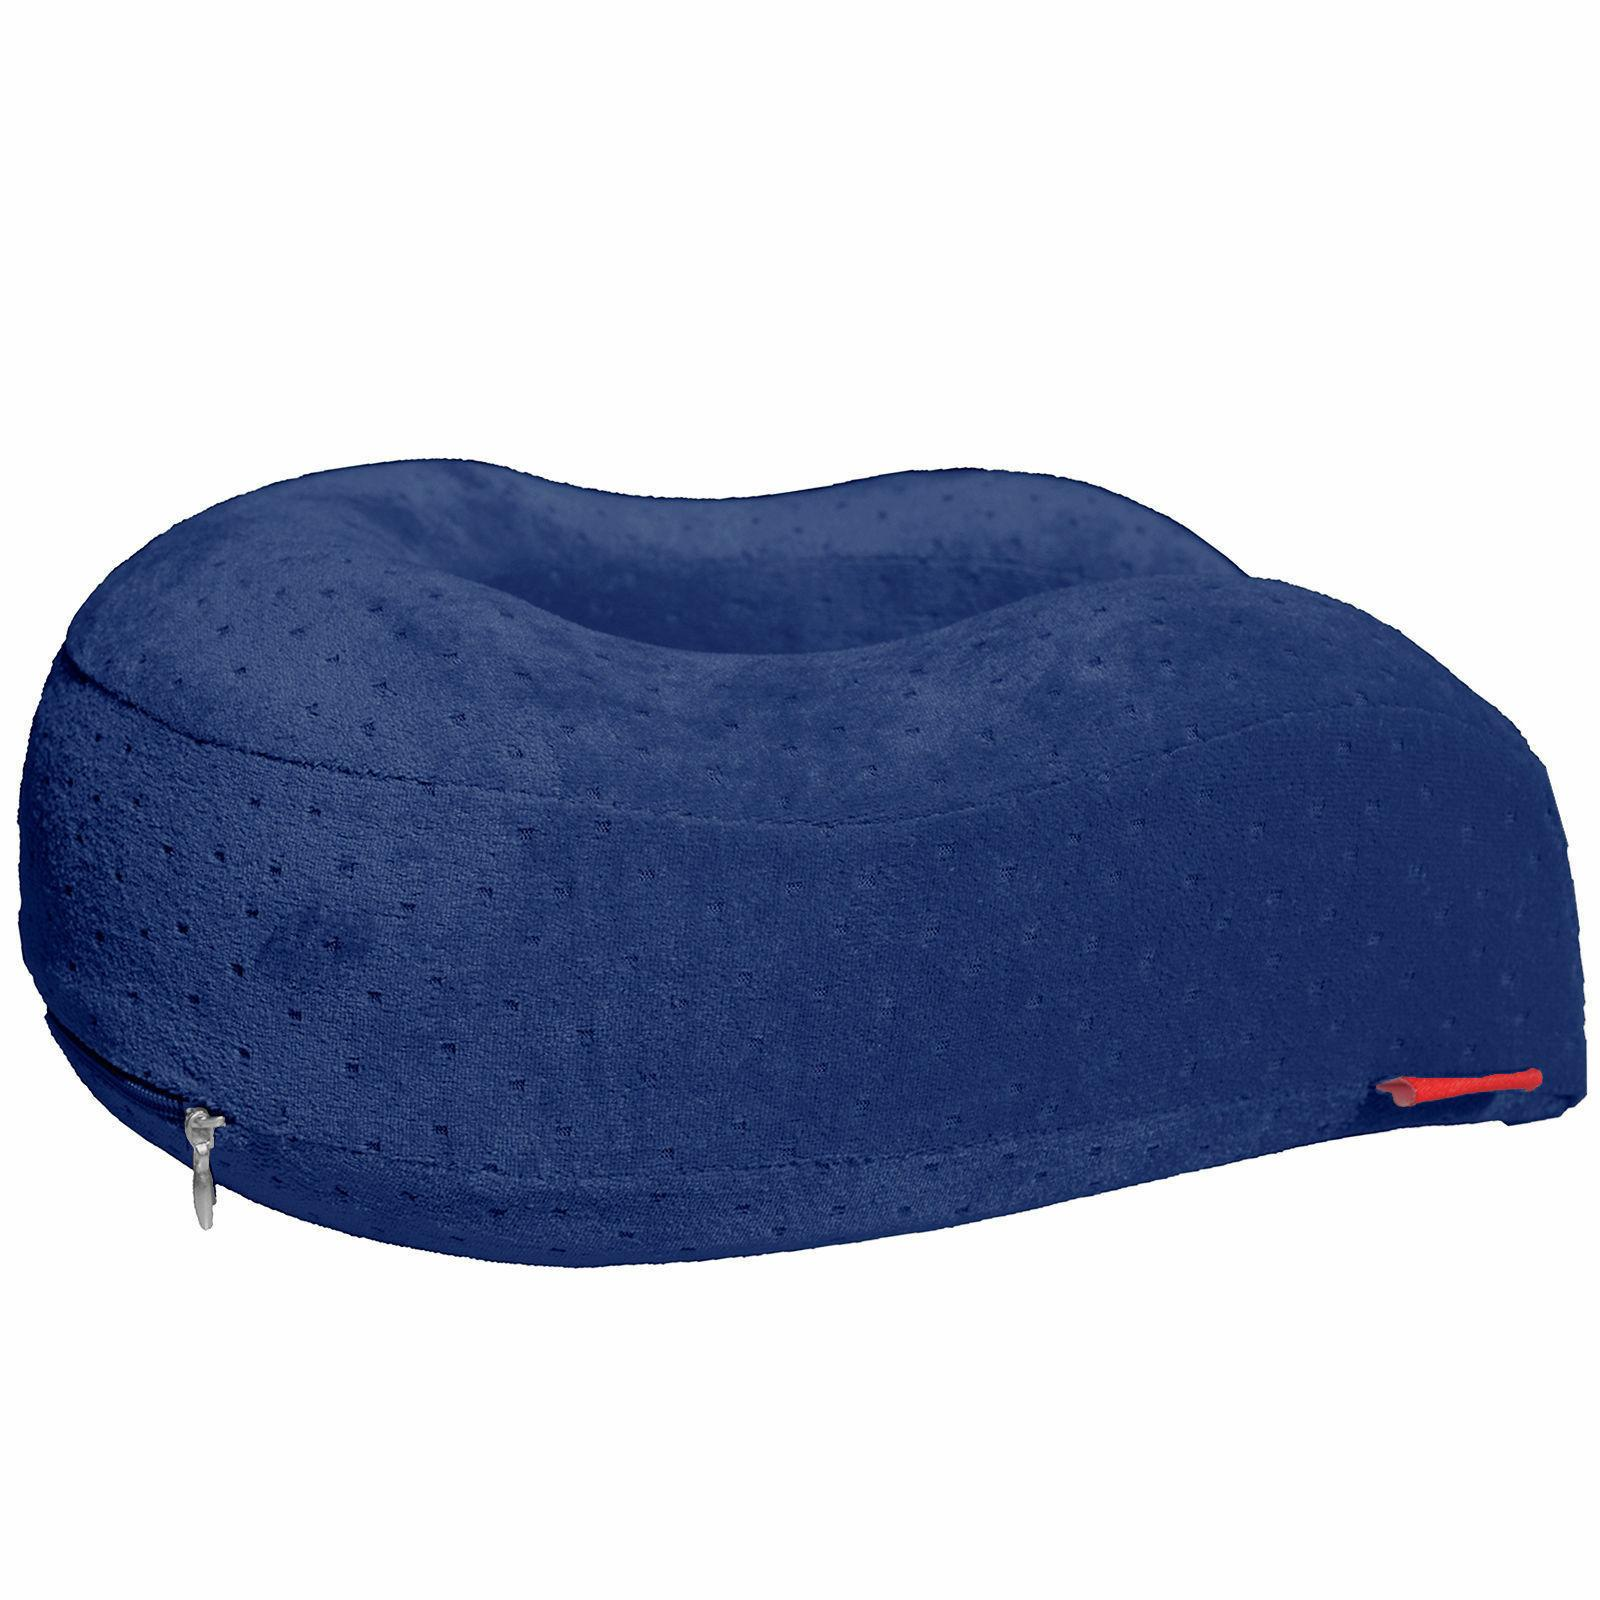 Navy Therapeutic Comfort Travel Pillow